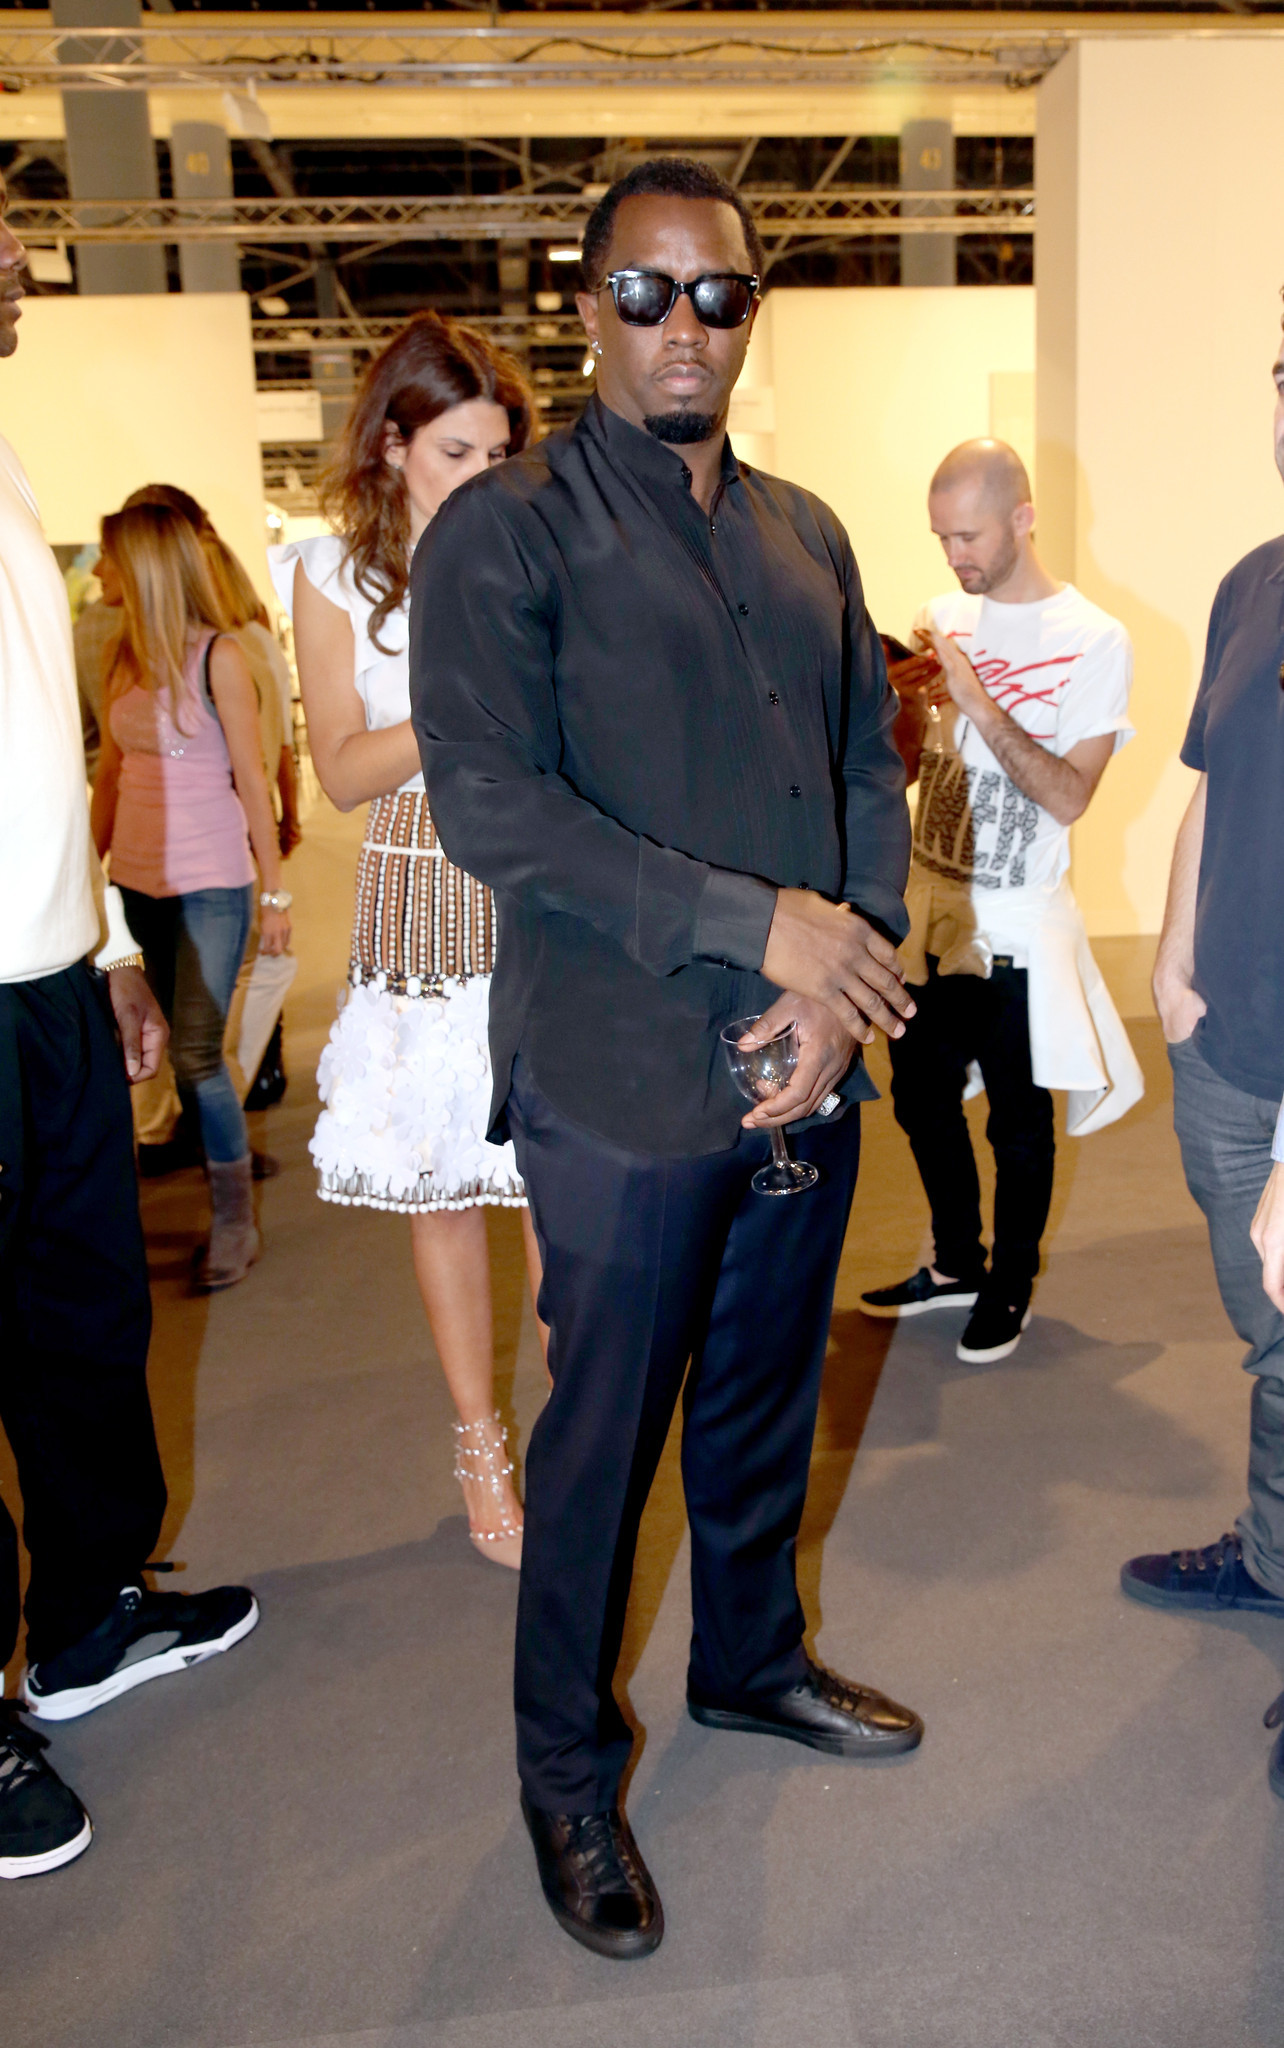 PHOTOS: Artists, celebs at Art Basel - Art Basel Miami Beach 2013 - Day 1